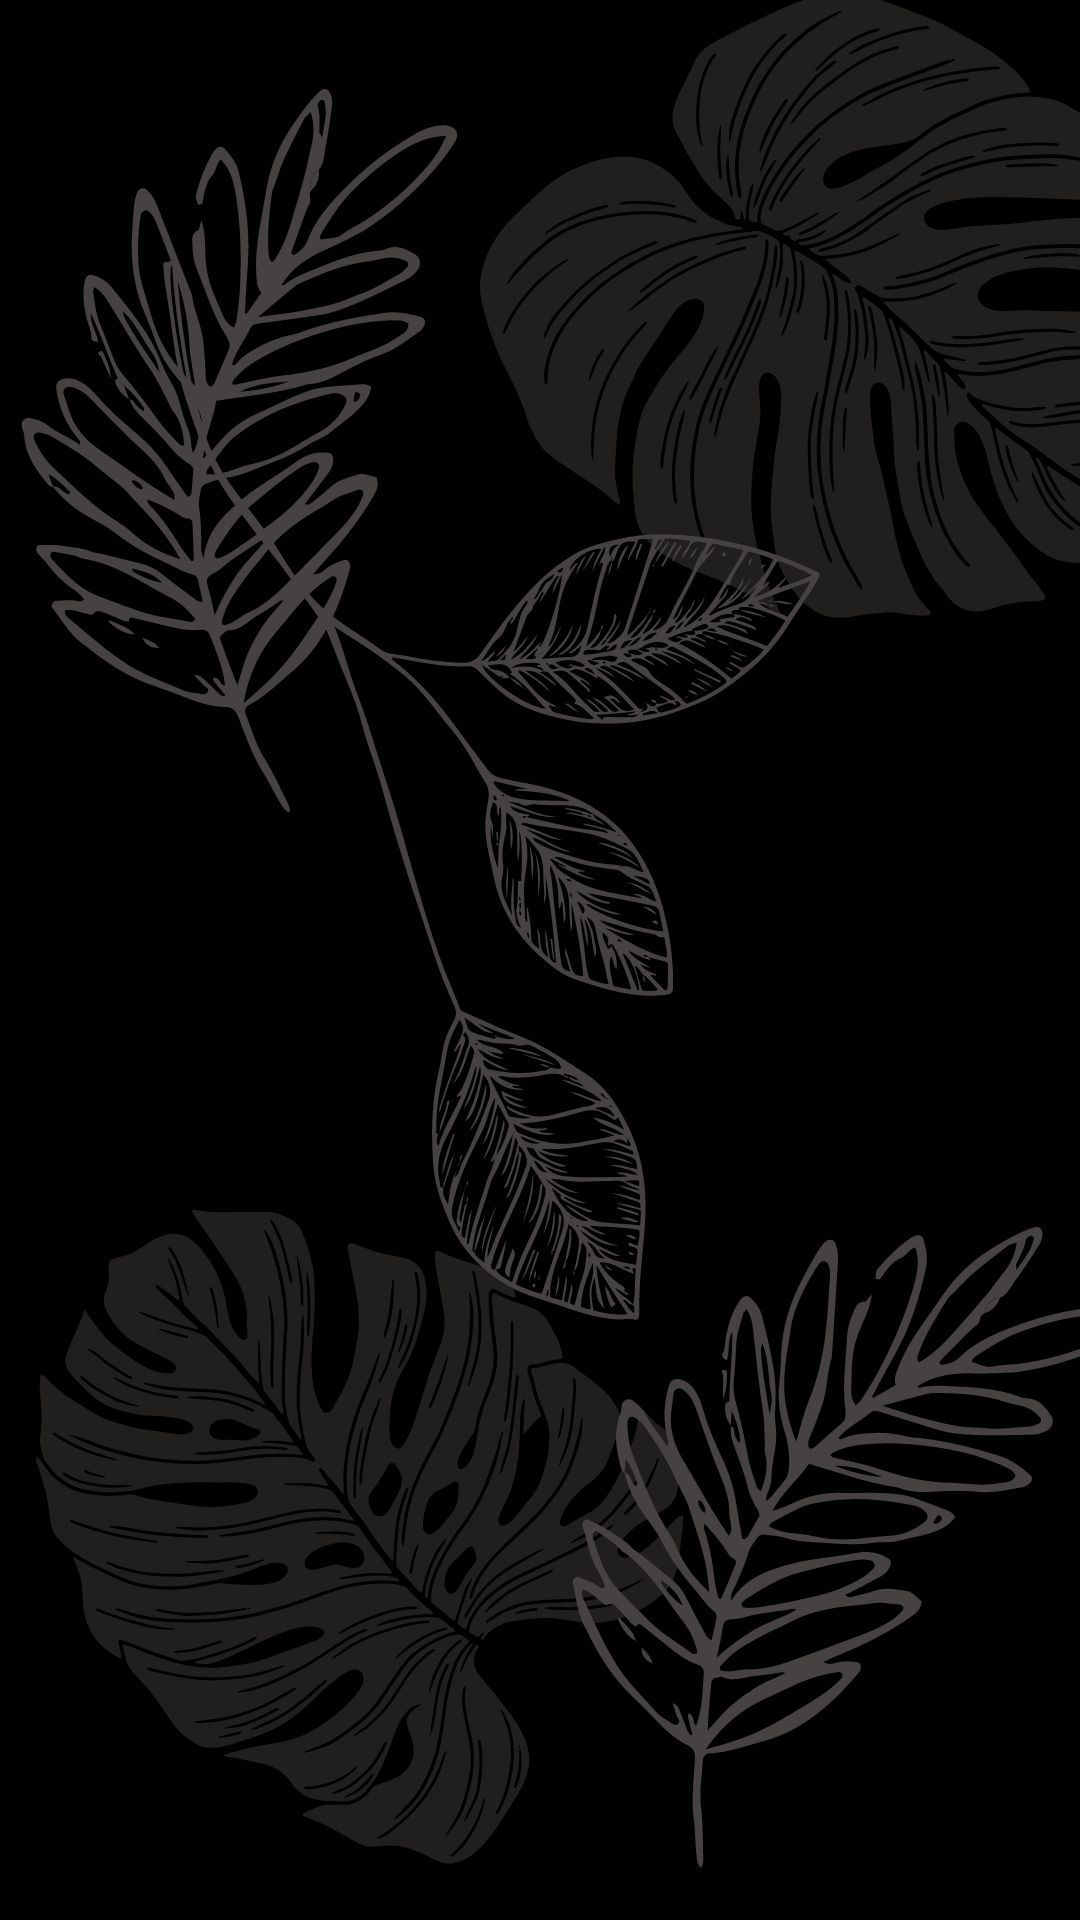 9 Minimalistic Wallpapers Iphone Android Modern Minimalist Monstera Leave Phone Background Instant Download Aesthetic Abstract Iphone Wallpaper Simple Iphone Wallpaper Phone Wallpaper